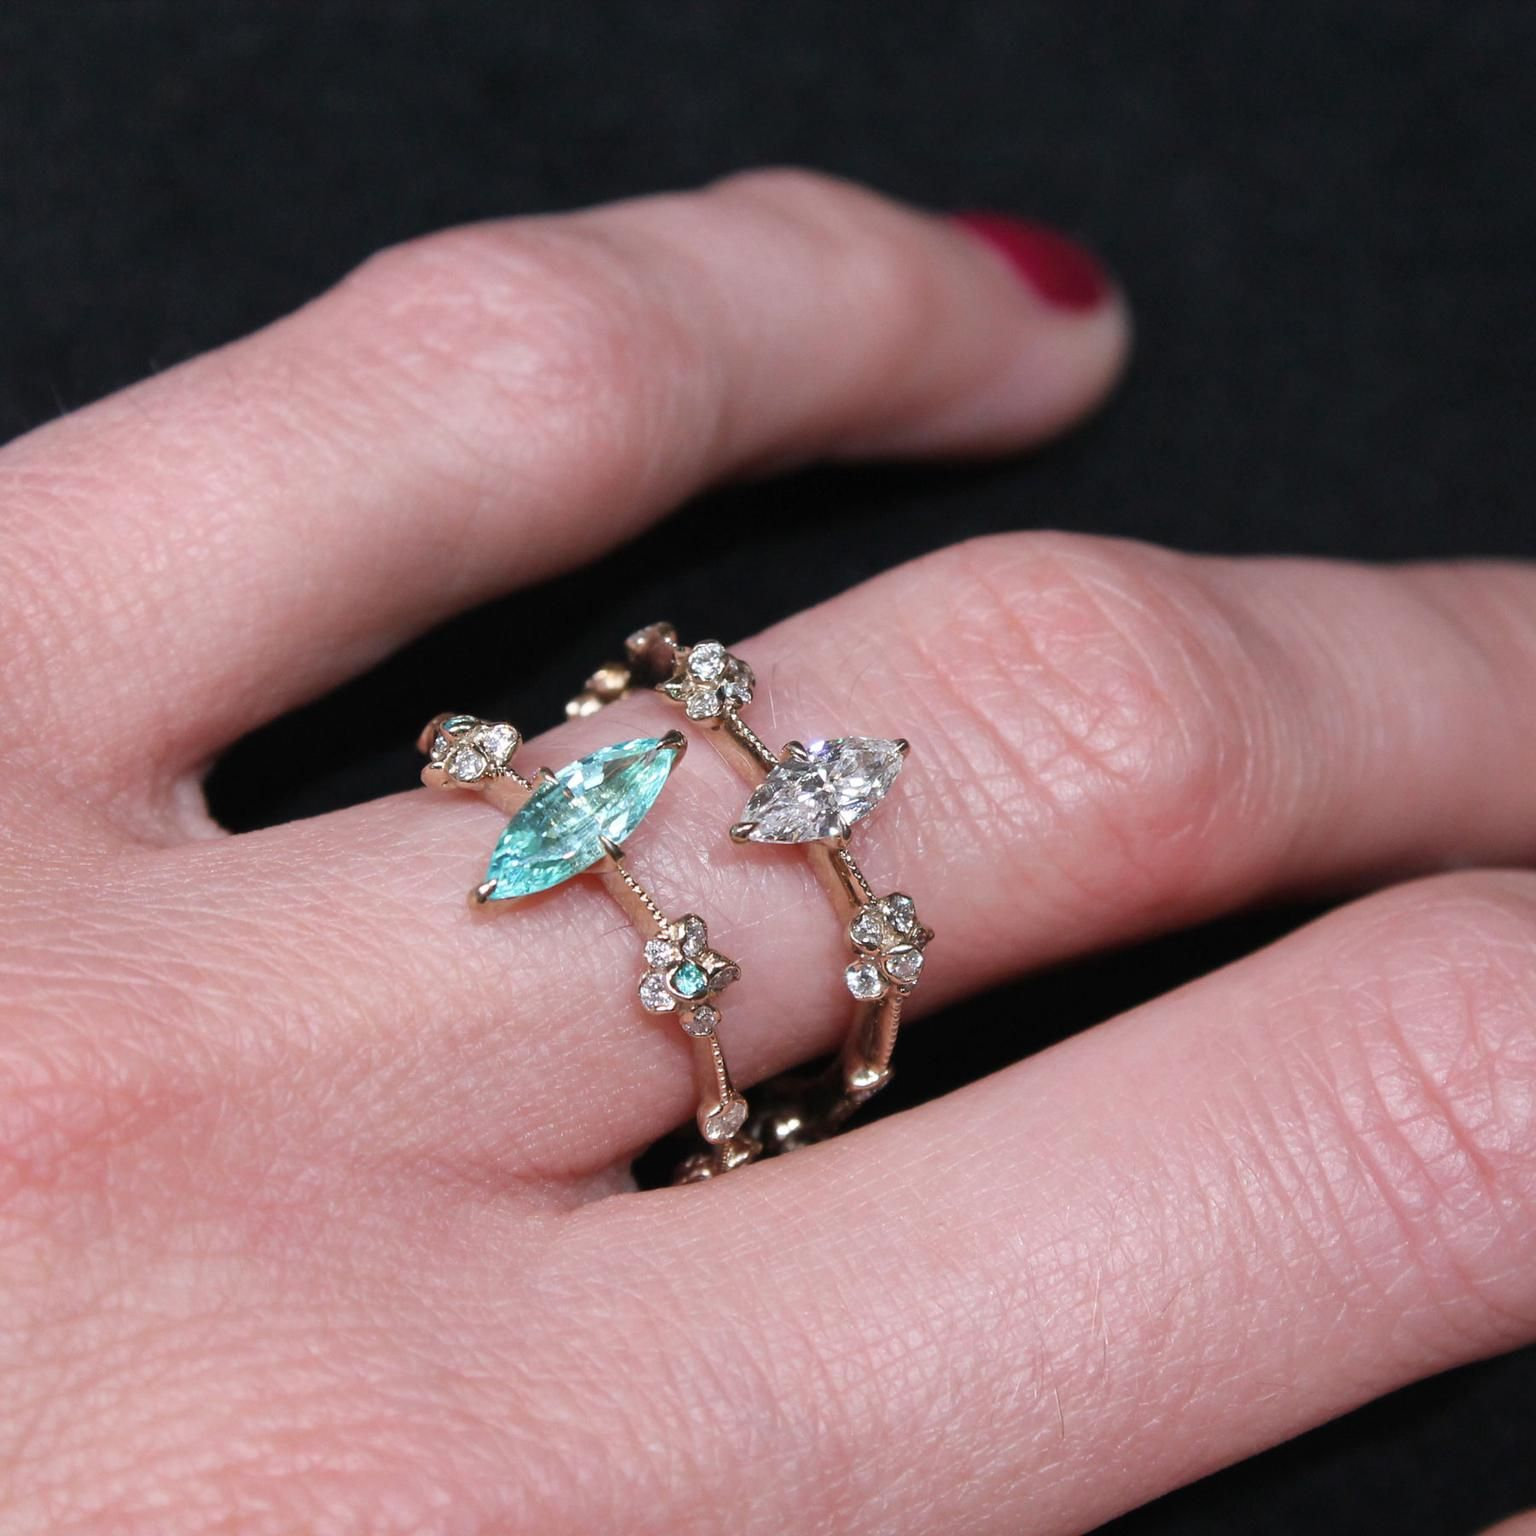 Marquise diamond solitaire engagement ring | Pinterest | Marquise ...